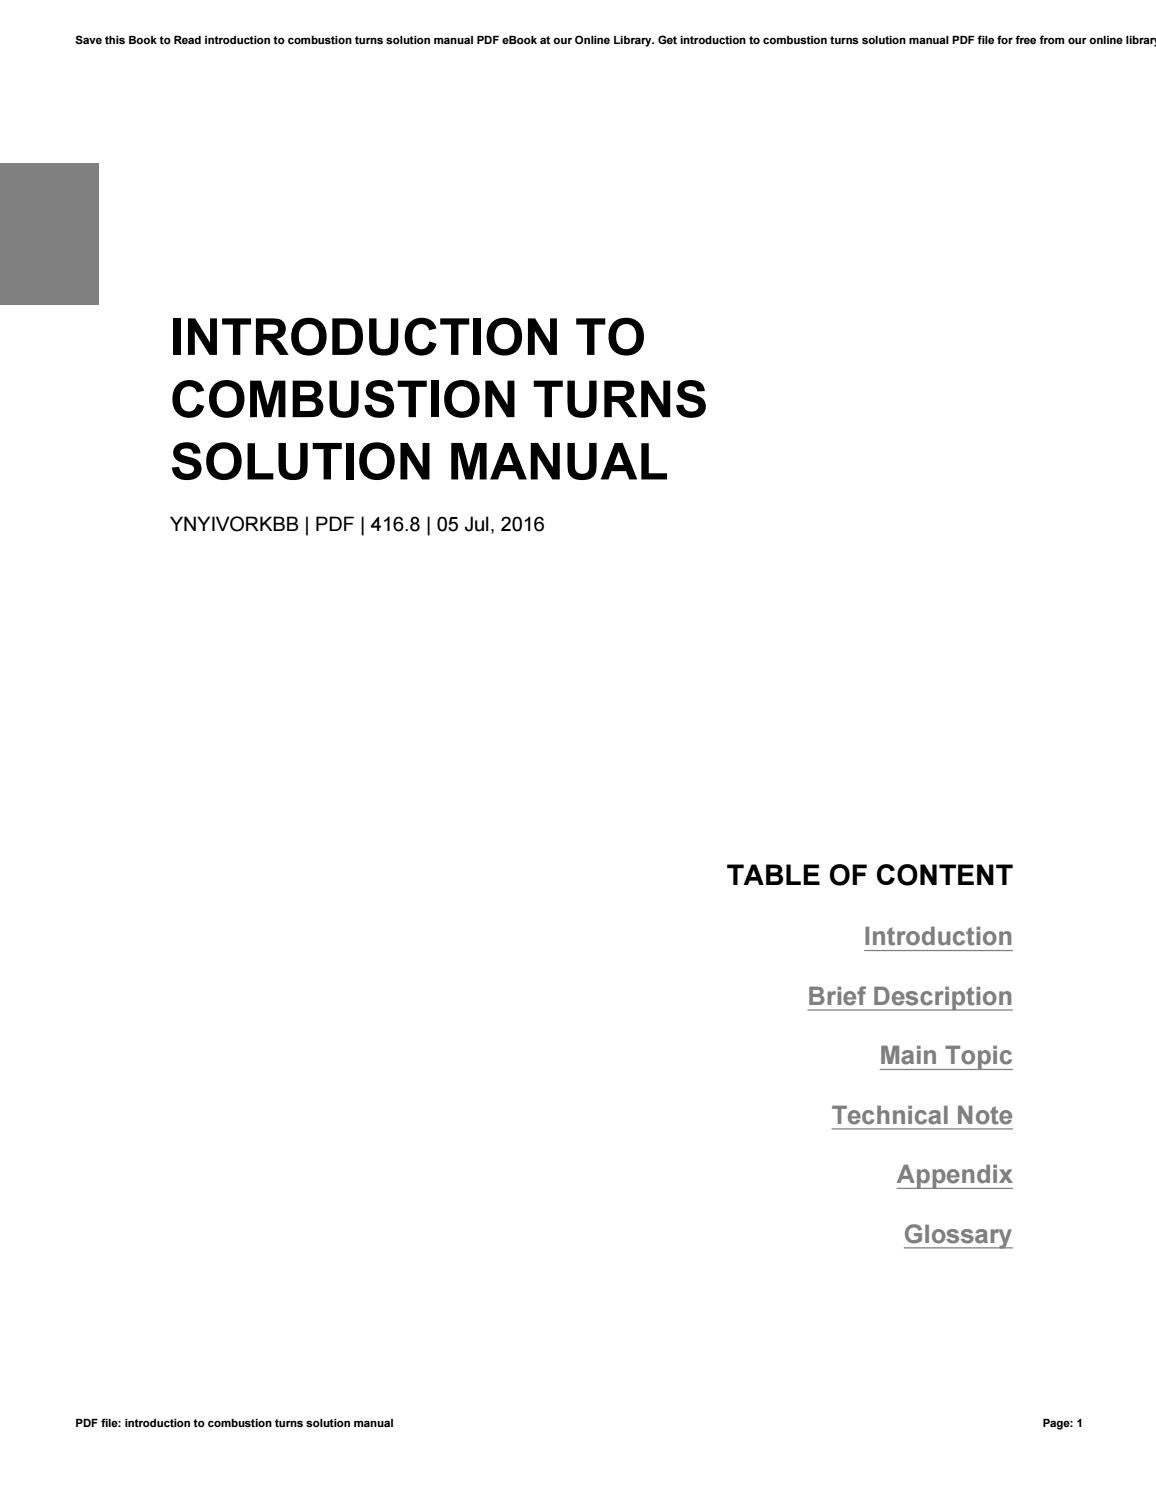 introduction to combustion solution manual